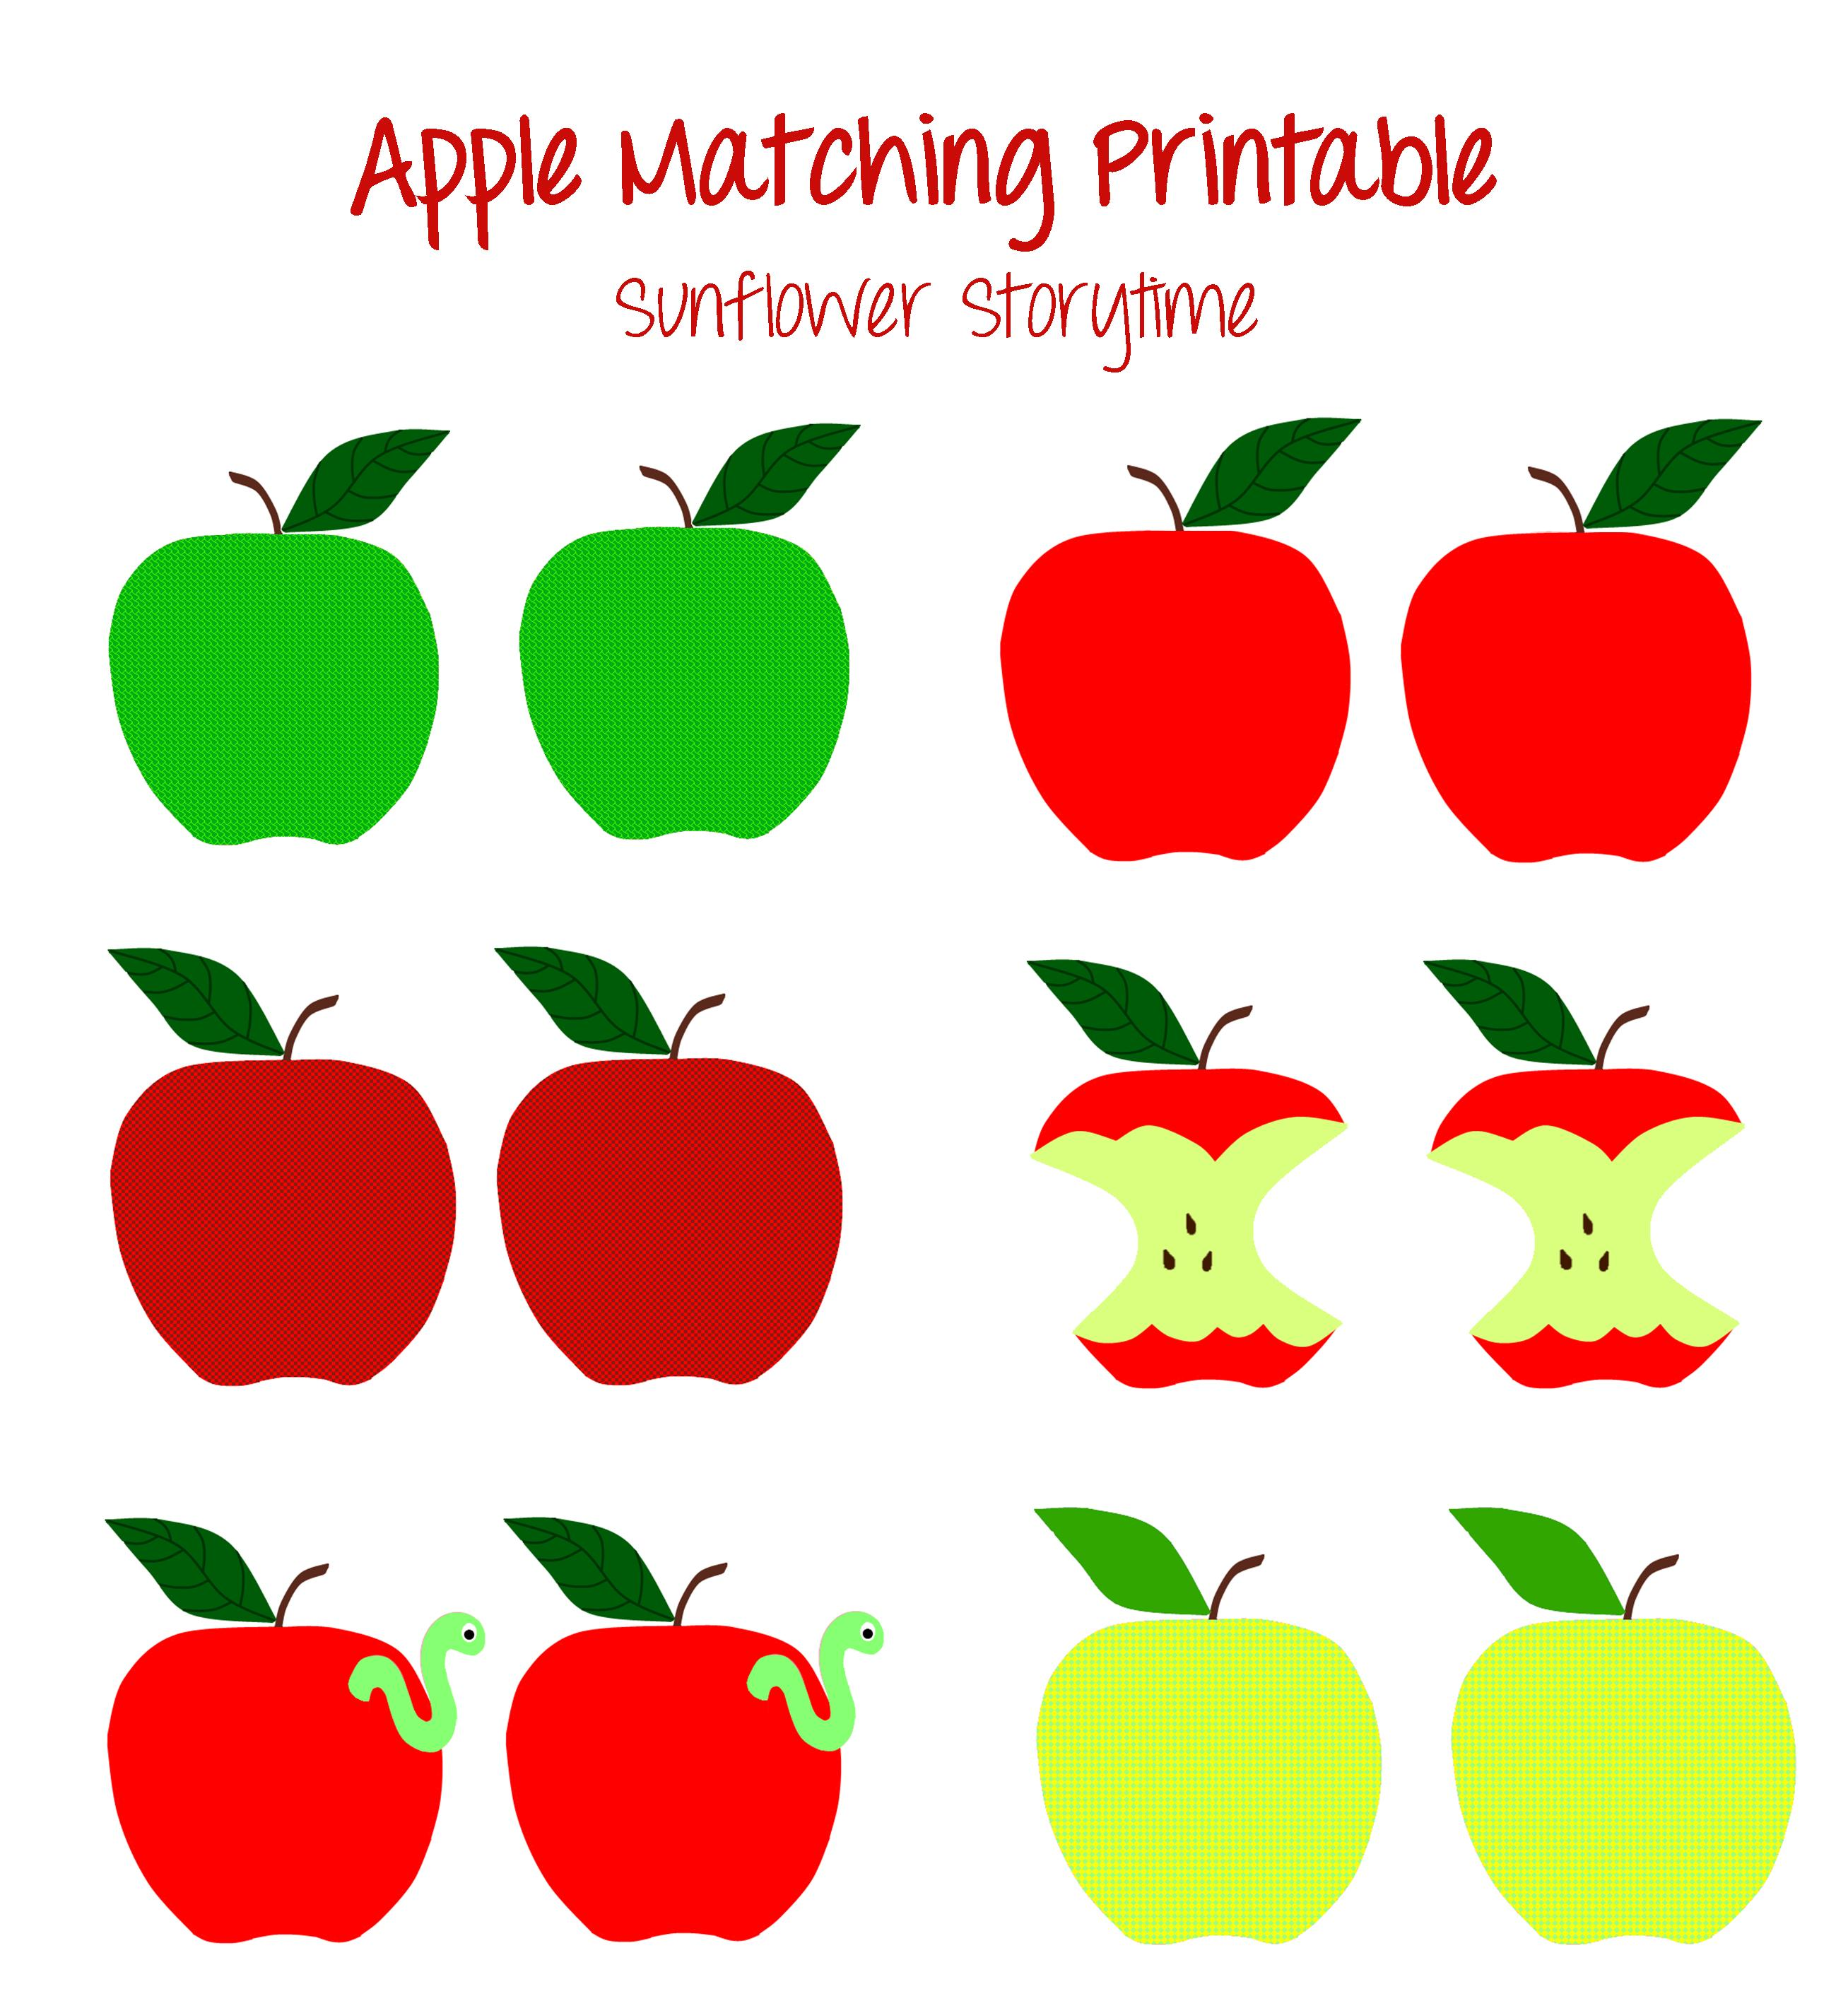 photo about Apple Printable identify Apple Matching Printable Sunflower Storytime